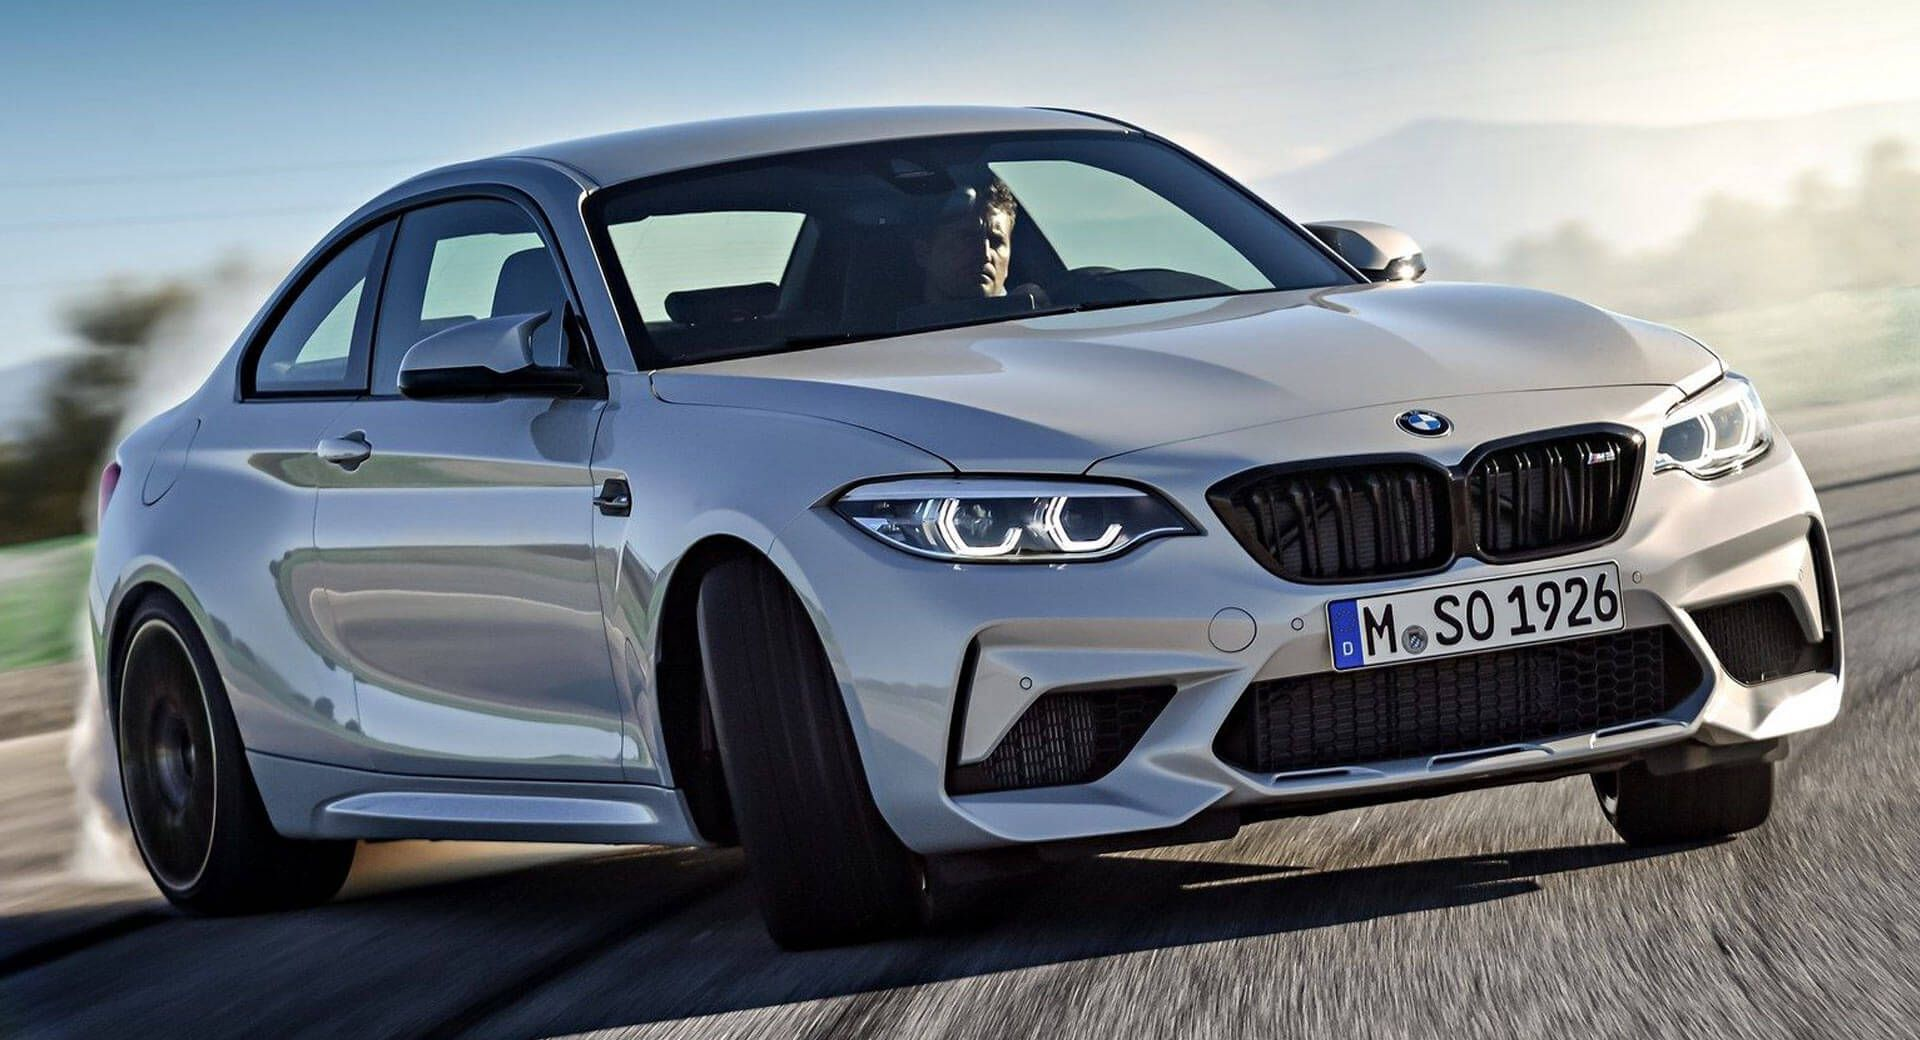 2019 Bmw M2 Competition To Be Priced From 58 900 Bmw M2 Bmw M4